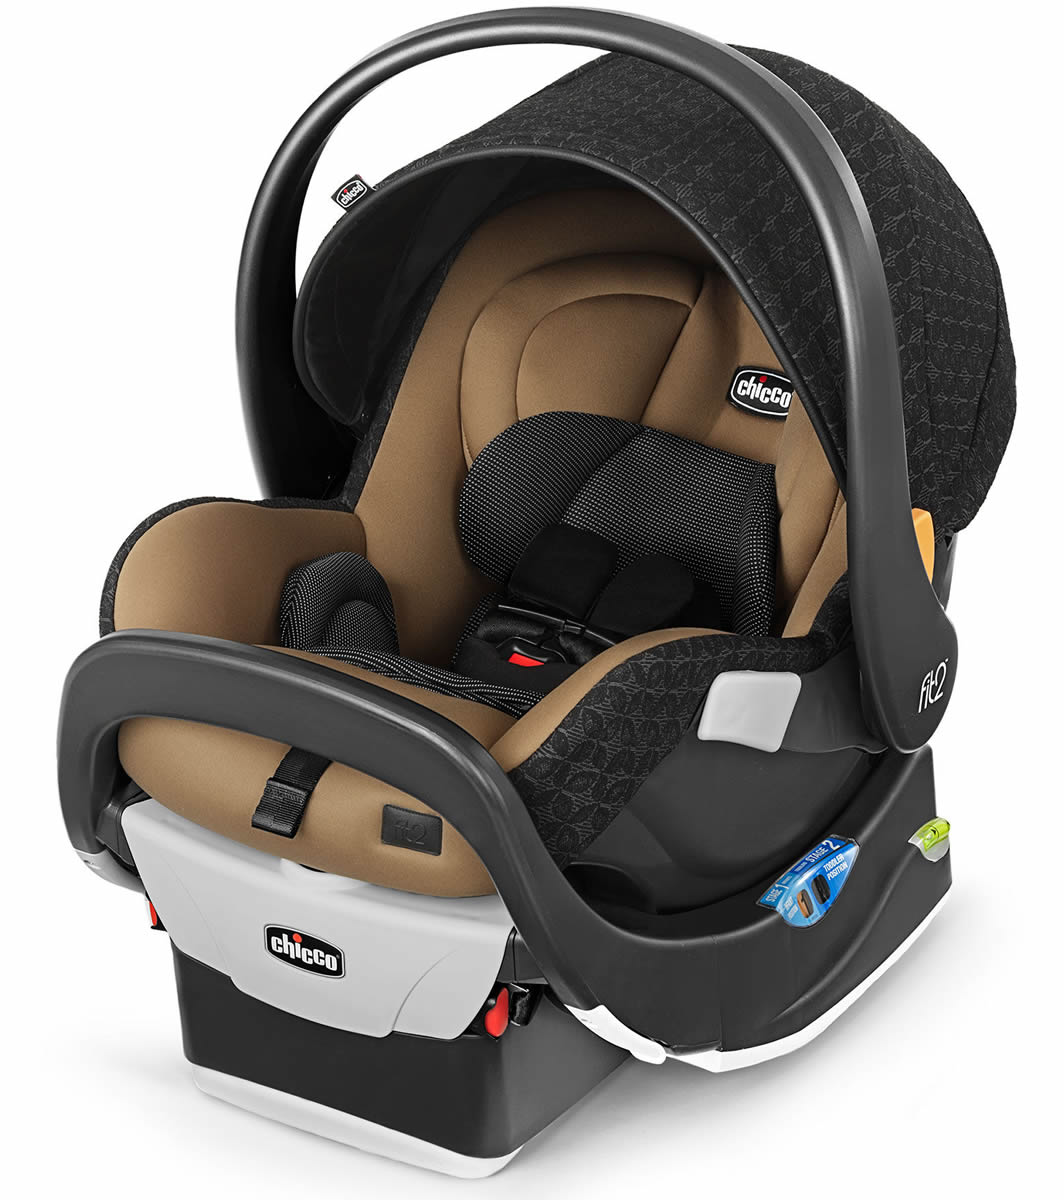 Chicco Fit2 Rear-Facing Infant